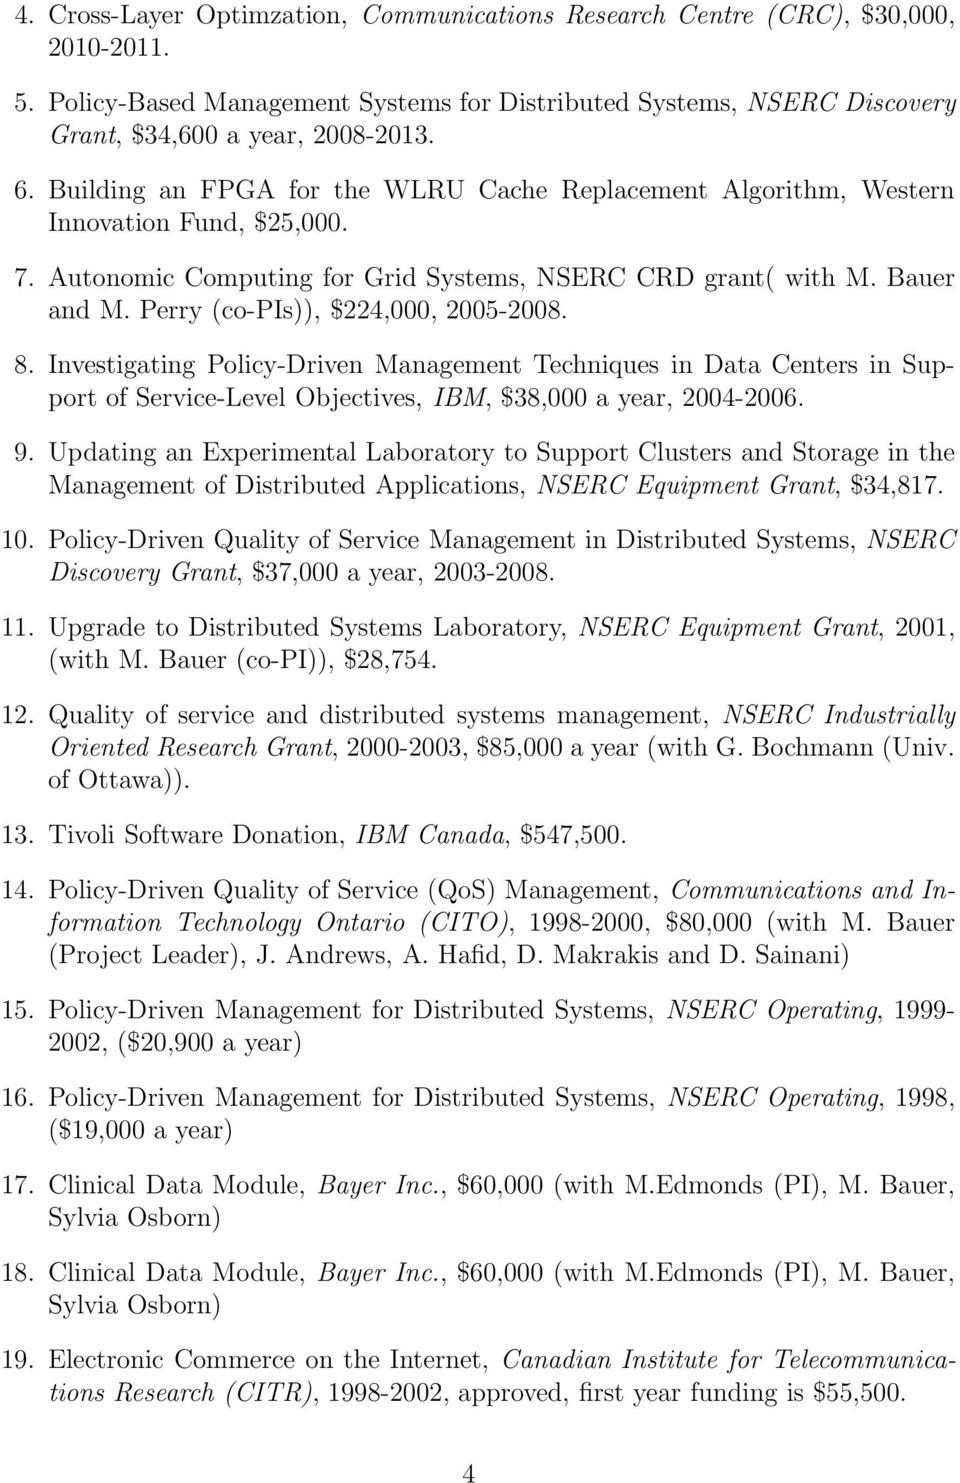 Perry (co-pis)), $224,000, 2005-2008. 8. Investigating Policy-Driven Management Techniques in Data Centers in Support of Service-Level Objectives, IBM, $38,000 a year, 2004-2006. 9.